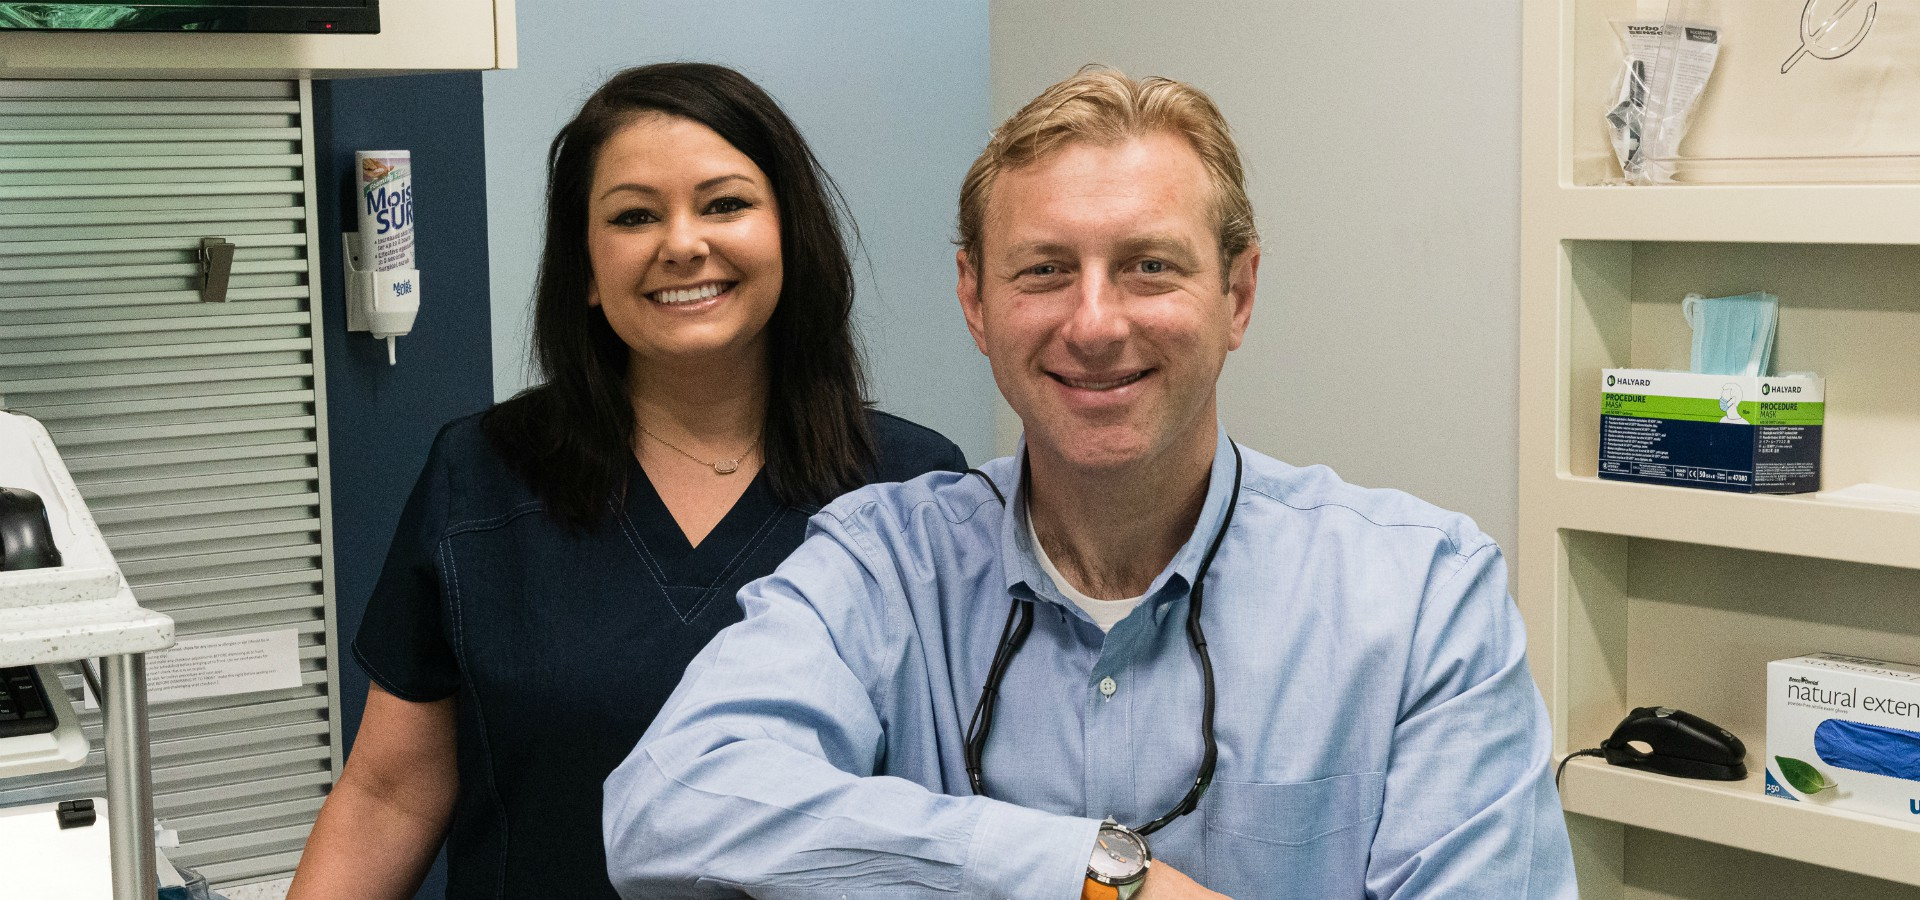 Dr. Bill and staff member smiling in a patient room at Durham DDS.